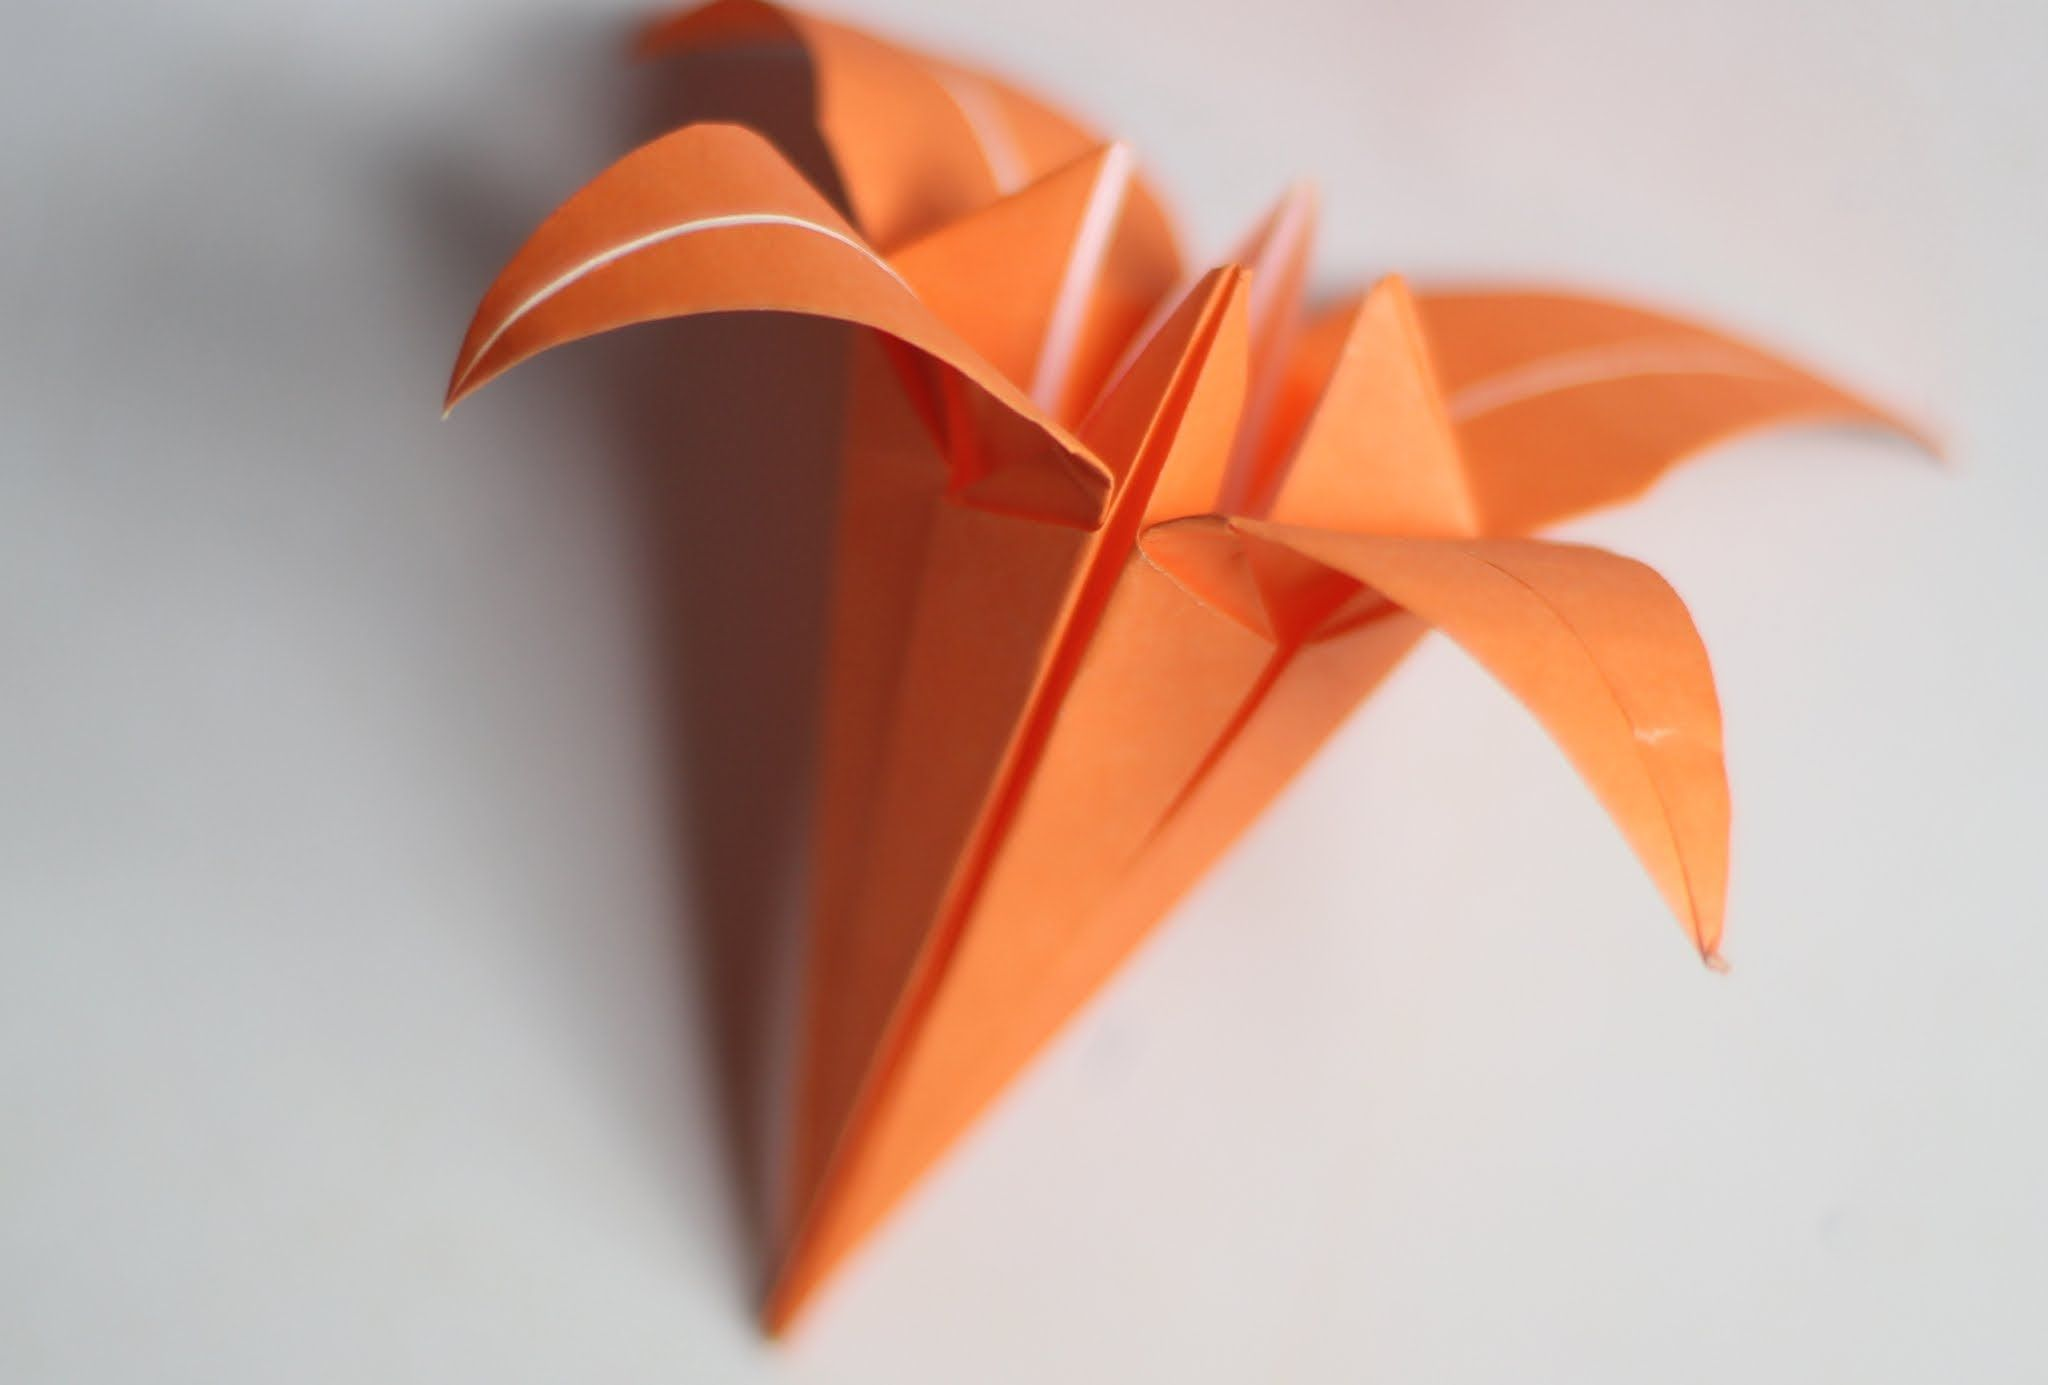 Hd Origami Lilyiris Flower Origami Instructions Origami